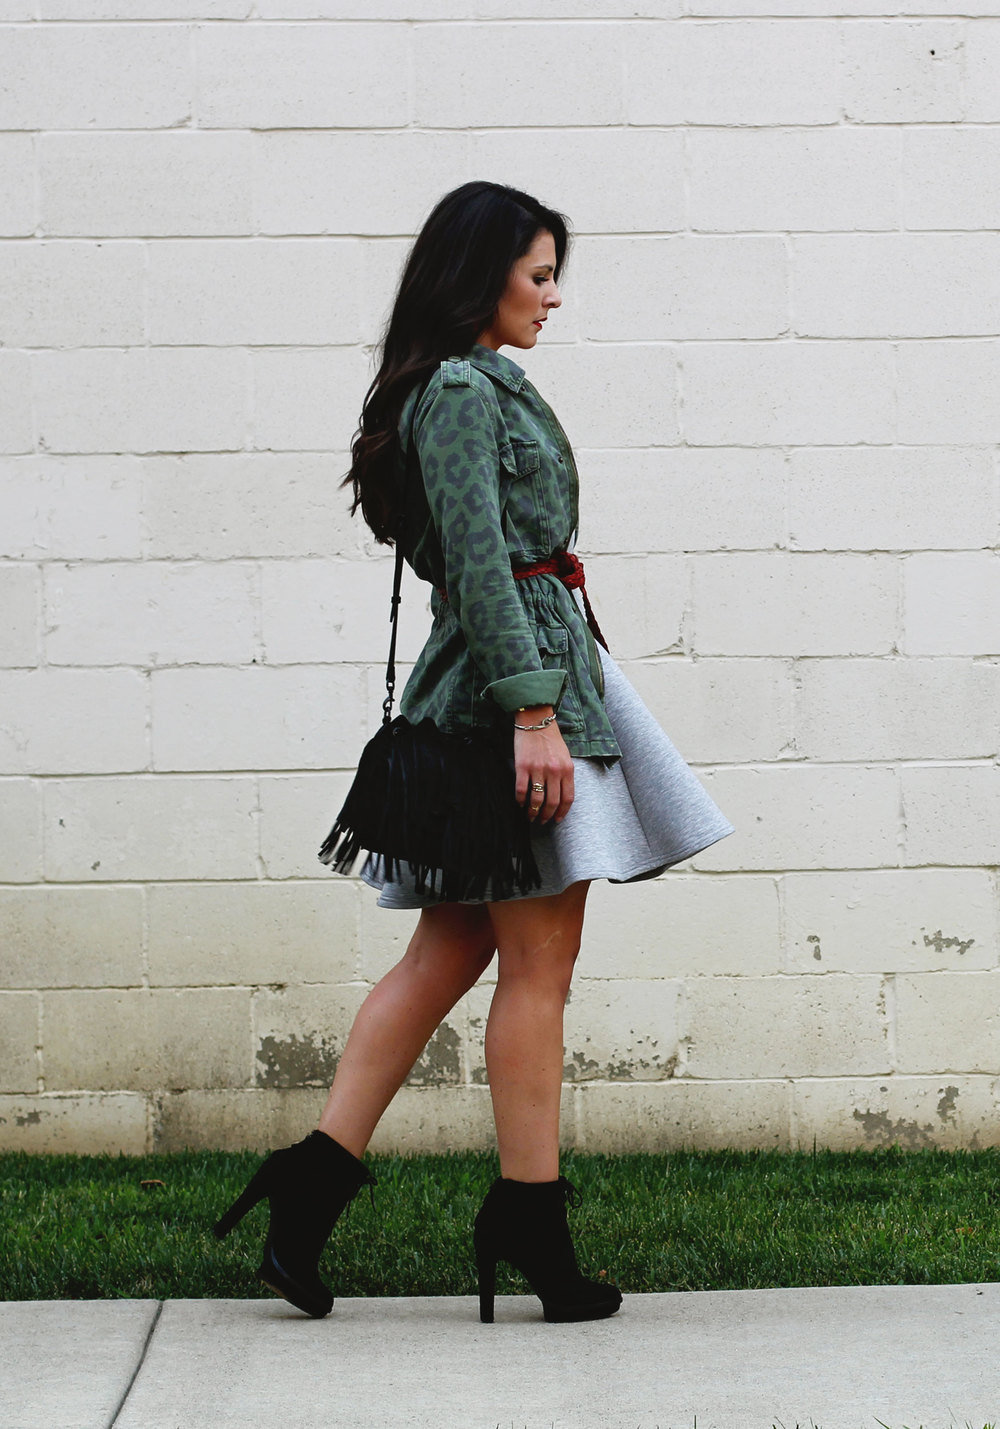 Fall Fashion Layering, Minkpink Stagnant Dress, Urban Outfitters Anorak, Belted with Red Belt, Black Elizabeth and James Booties, Rebecca Minkoff Fringe Bucket Bag